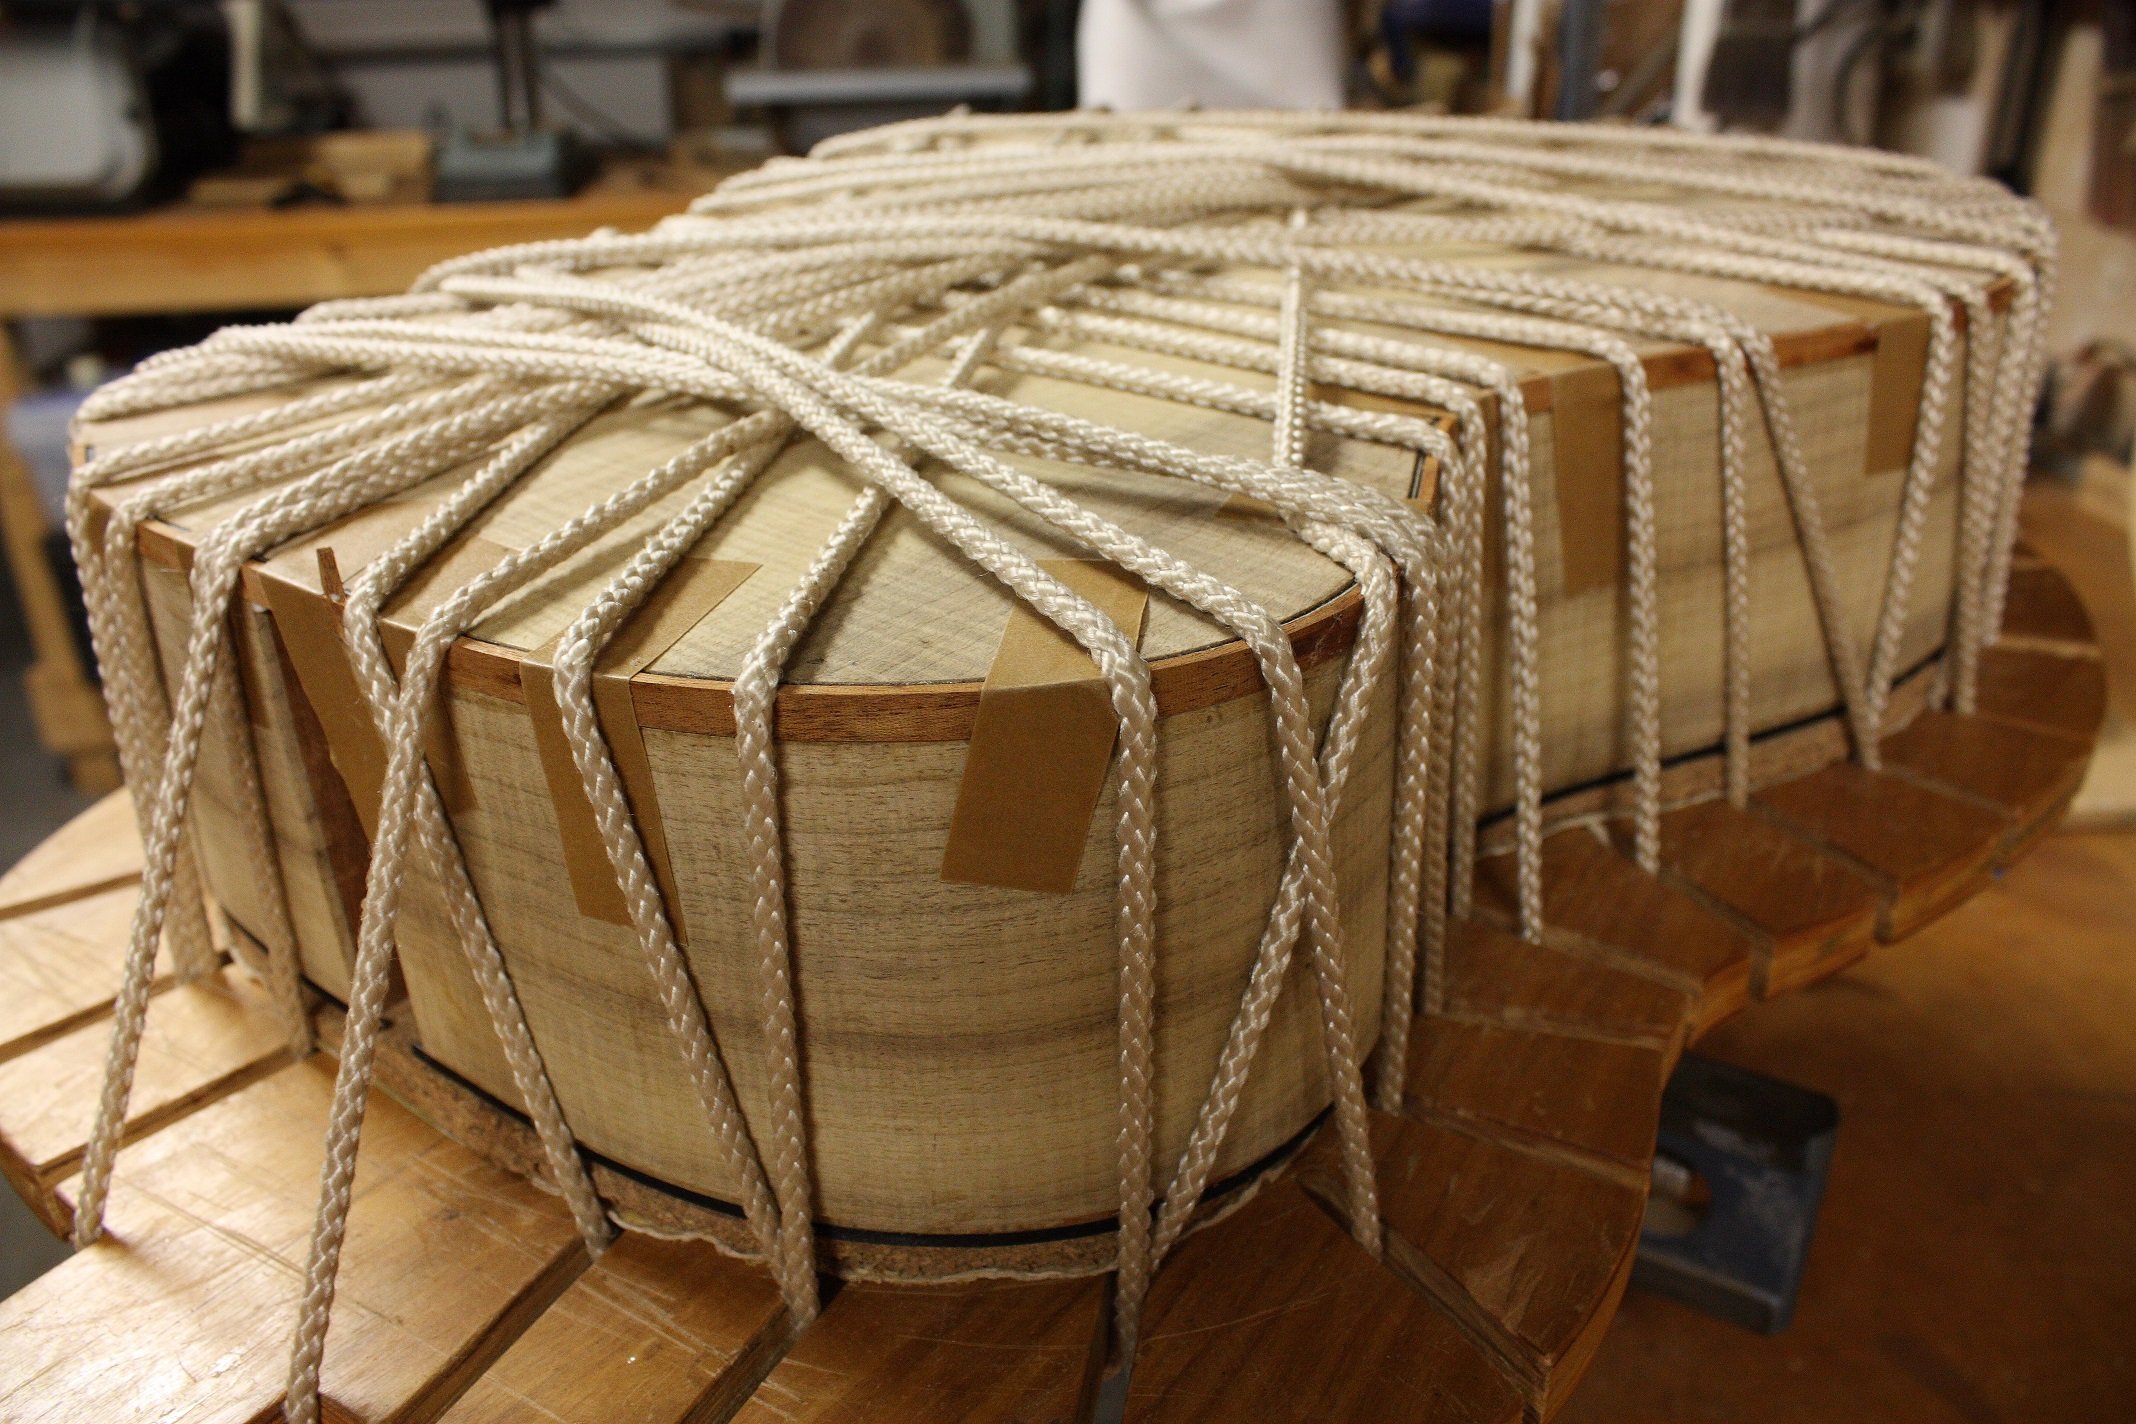 Rope is used to hold the binding in the body channel during the glue up stage.